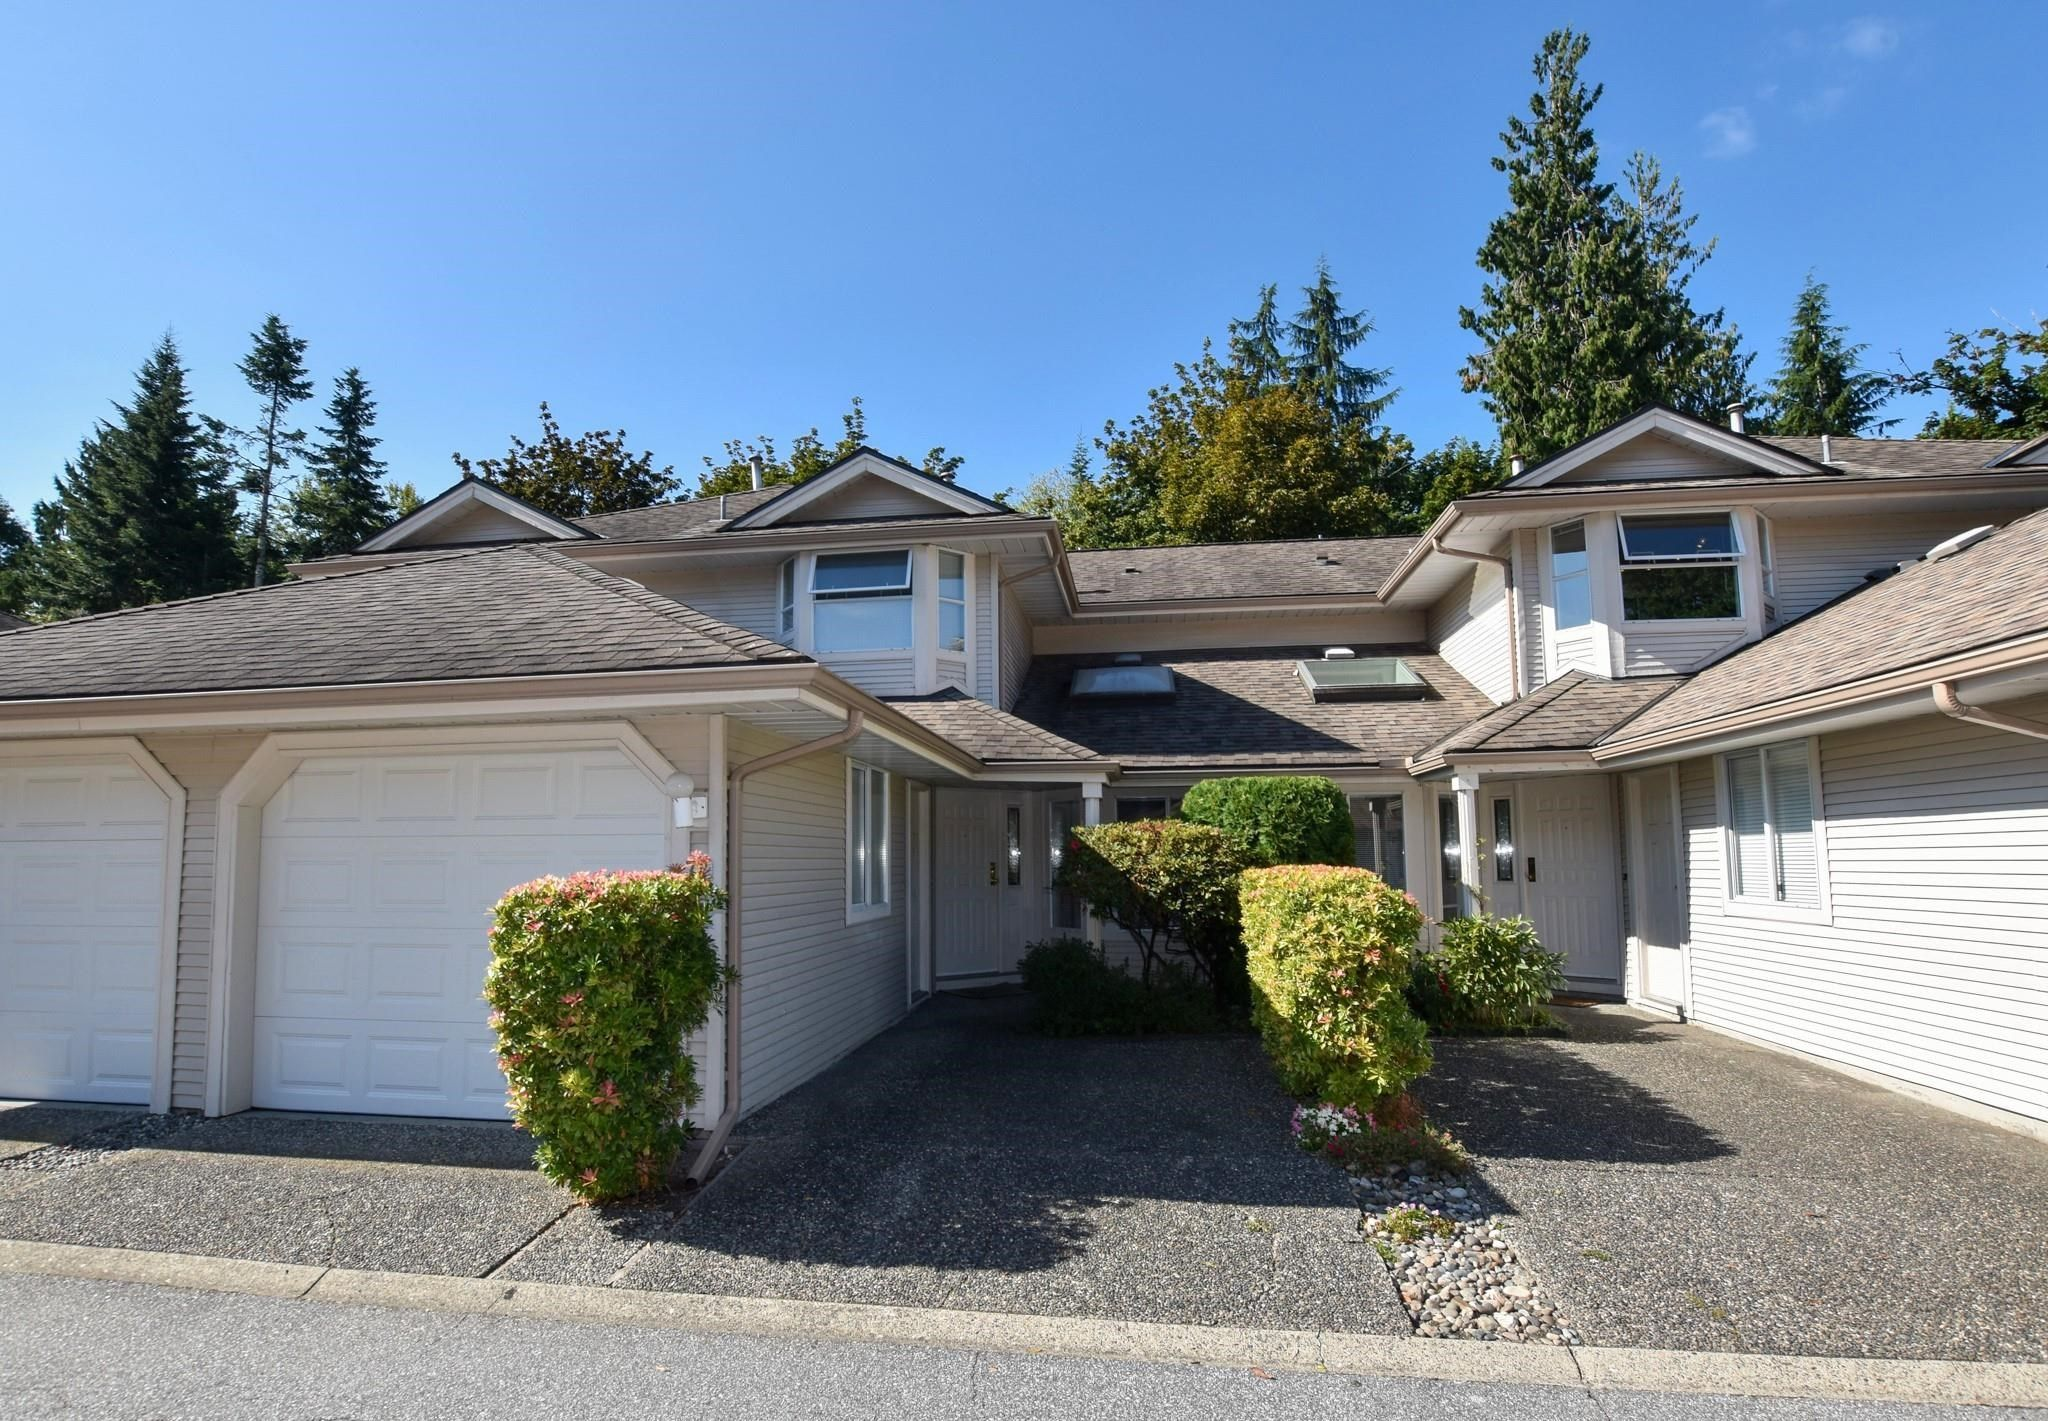 """Main Photo: 72 9045 WALNUT GROVE Drive in Langley: Walnut Grove Townhouse for sale in """"Bridlewoods"""" : MLS®# R2618207"""